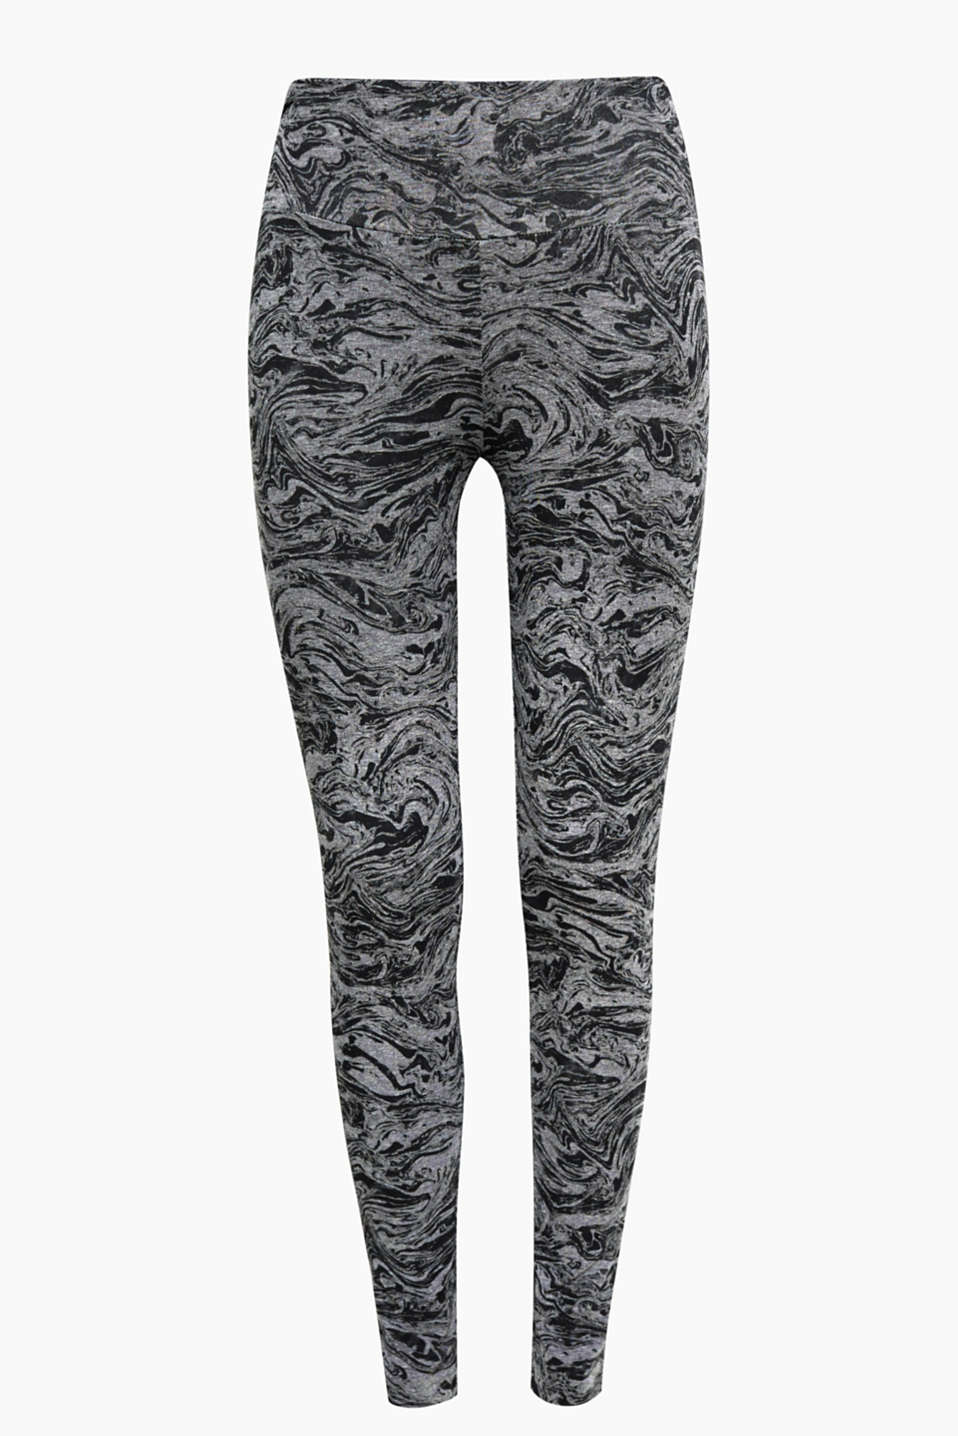 Vous allez faire sensation : avec ces leggings confortables à imprimé all-over cool en coton stretch